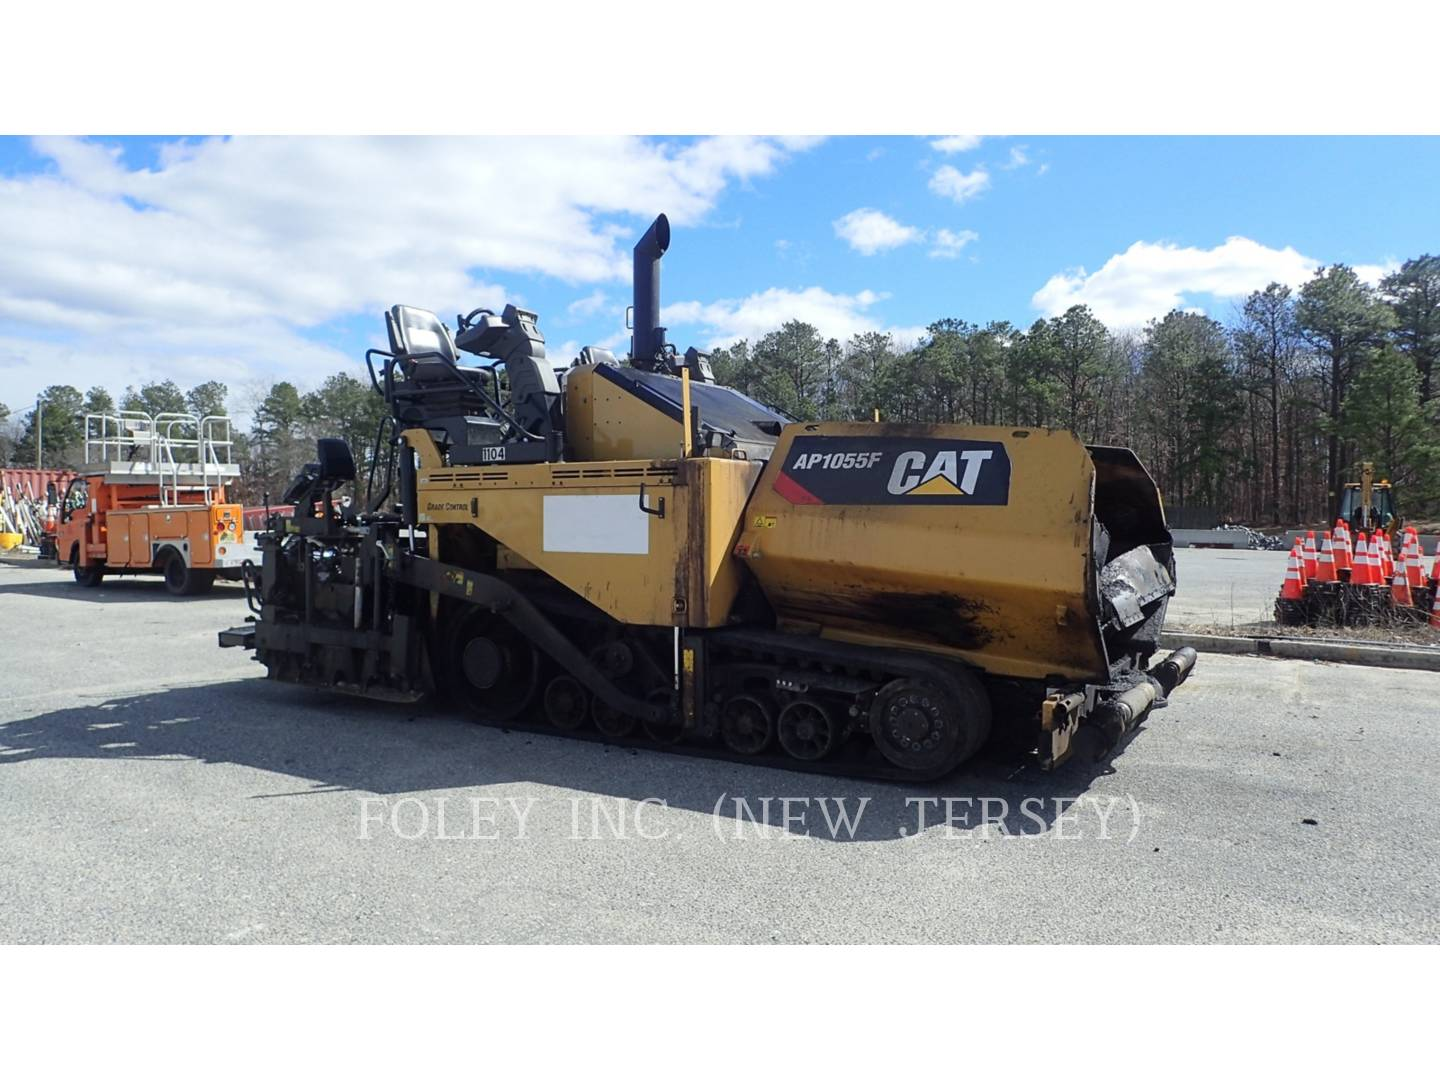 Used 2015 Caterpillar AP1055F for Sale in NJ, PA, DE and Staten